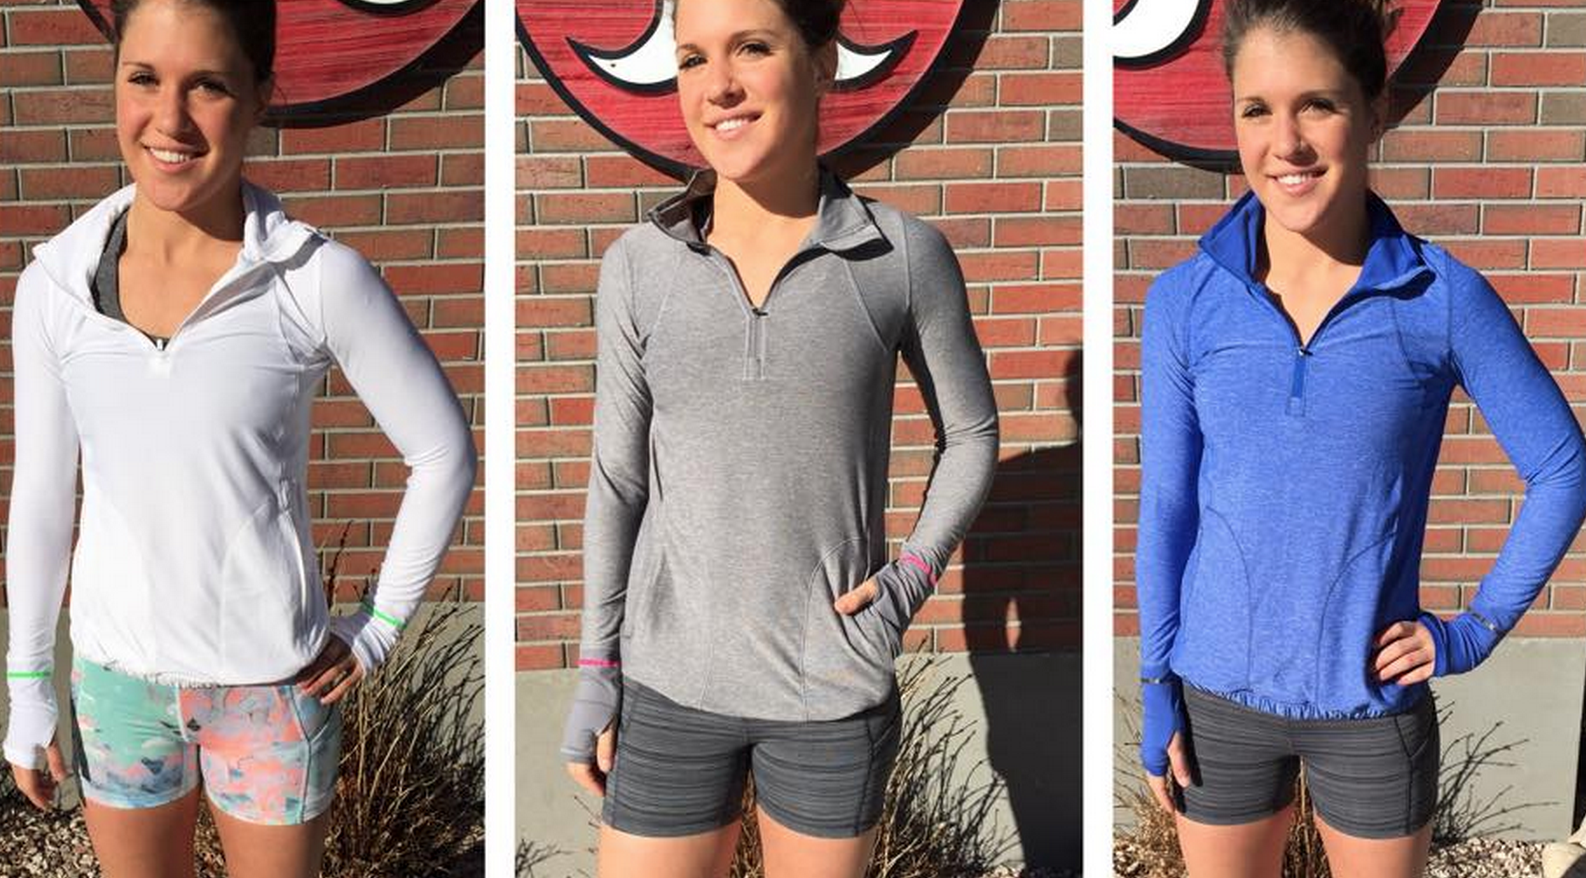 http://www.anrdoezrs.net/links/7680158/type/dlg/http://shop.lululemon.com/products/clothes-accessories/tops-long-sleeve/Pace-Pusher-1-2-Zip?cc=17898&skuId=3594824&catId=tops-long-sleeve